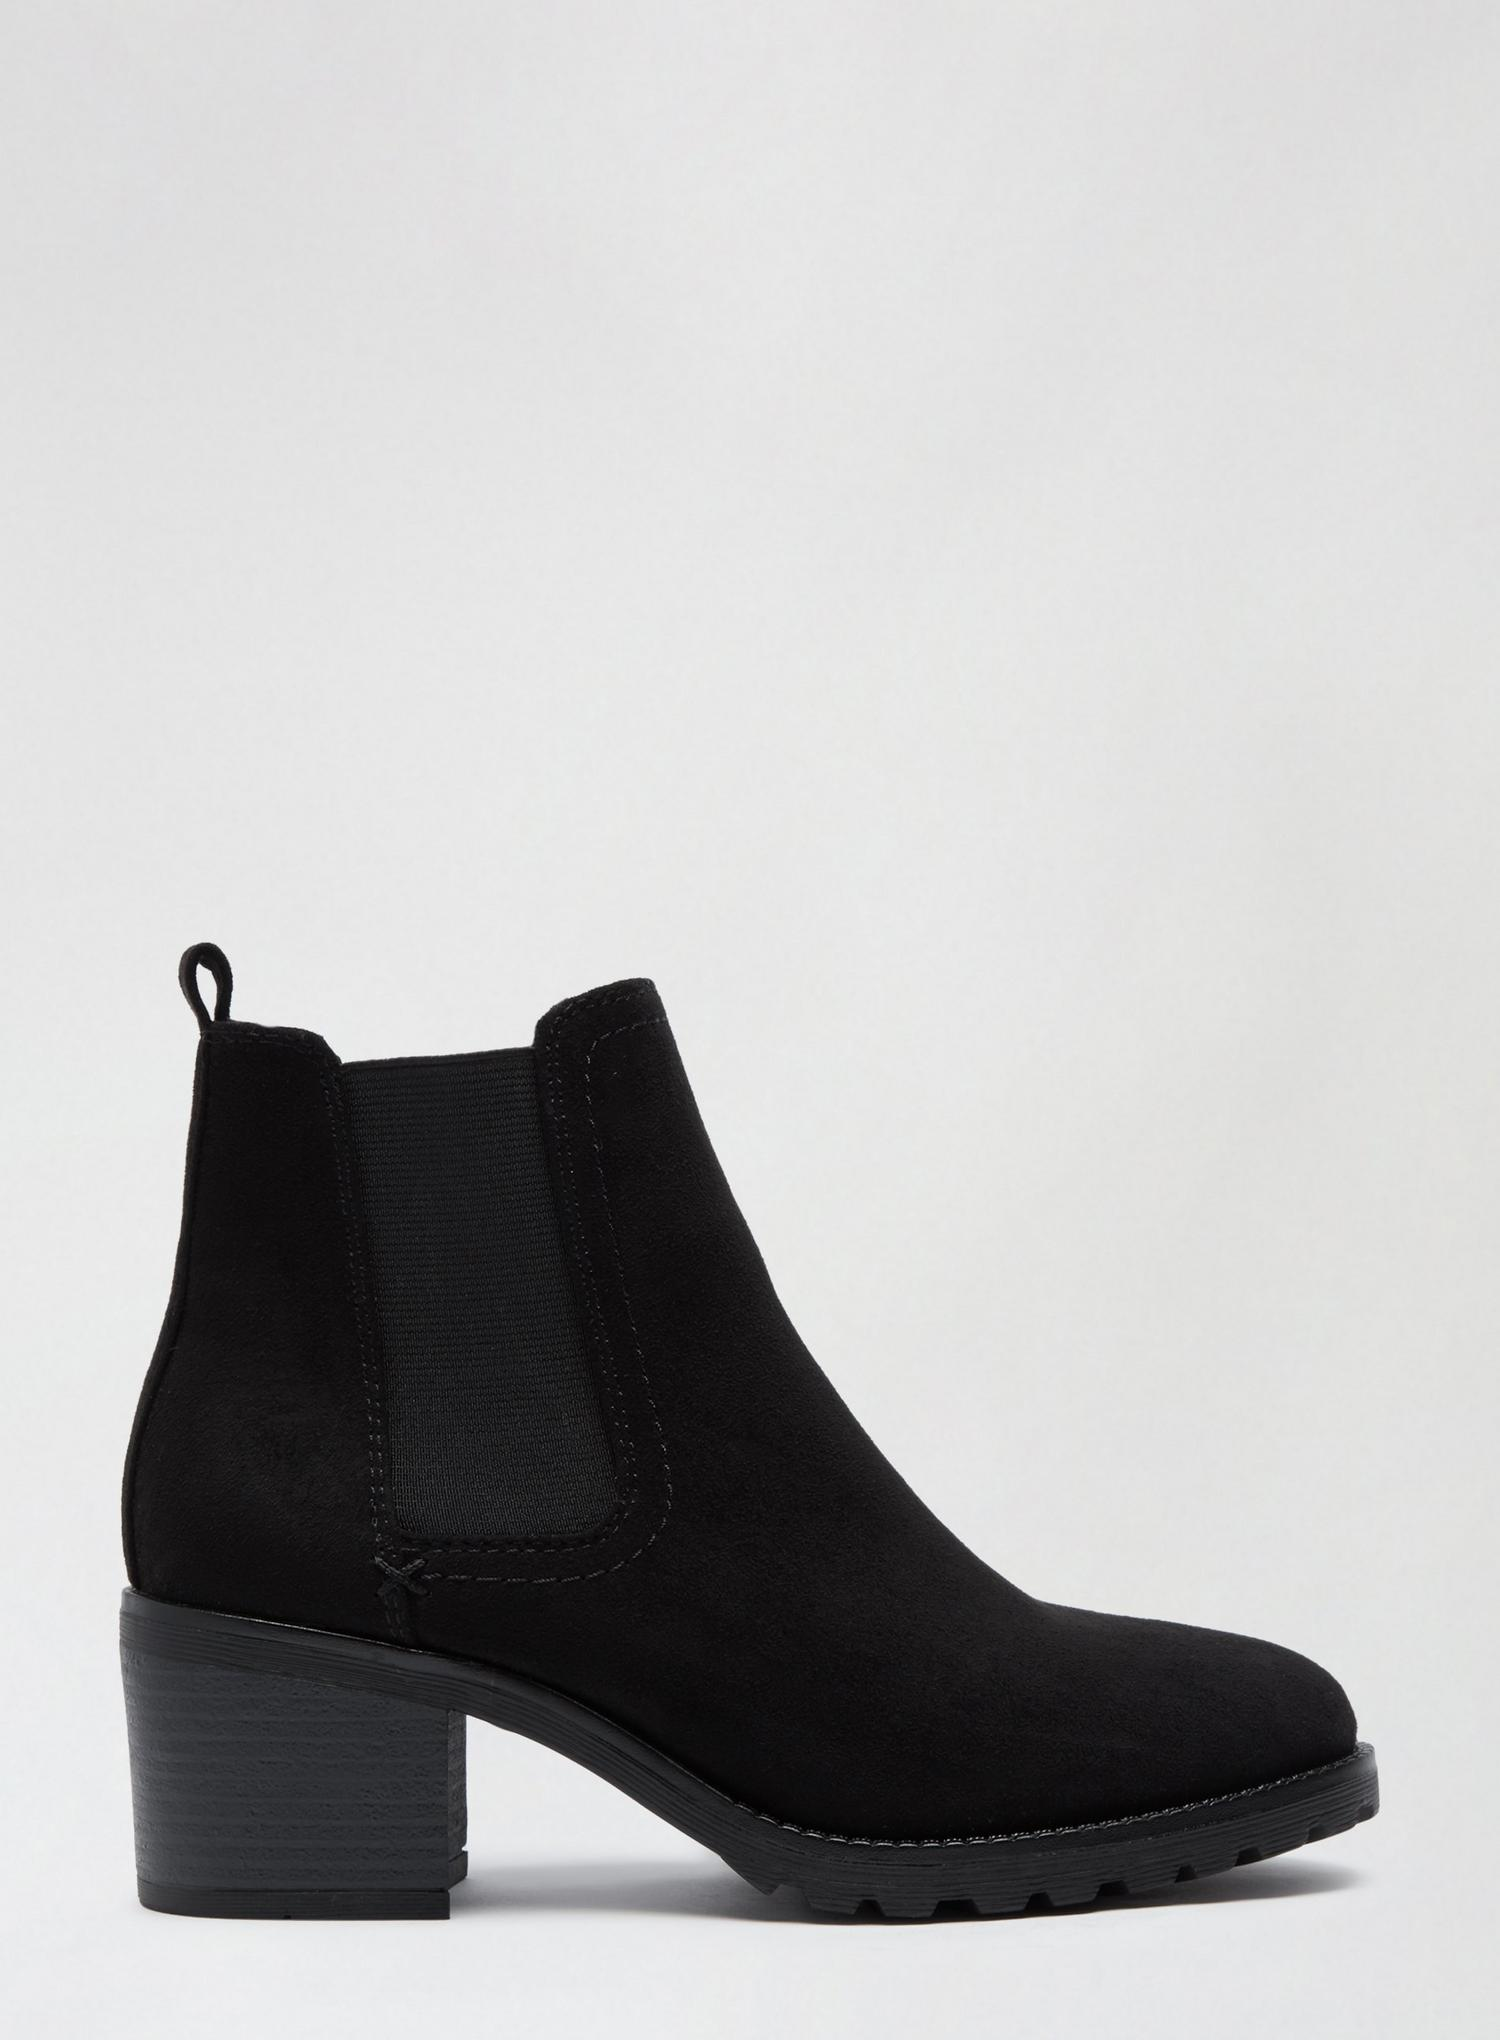 105 Black Ami Chelsea Boots image number 2